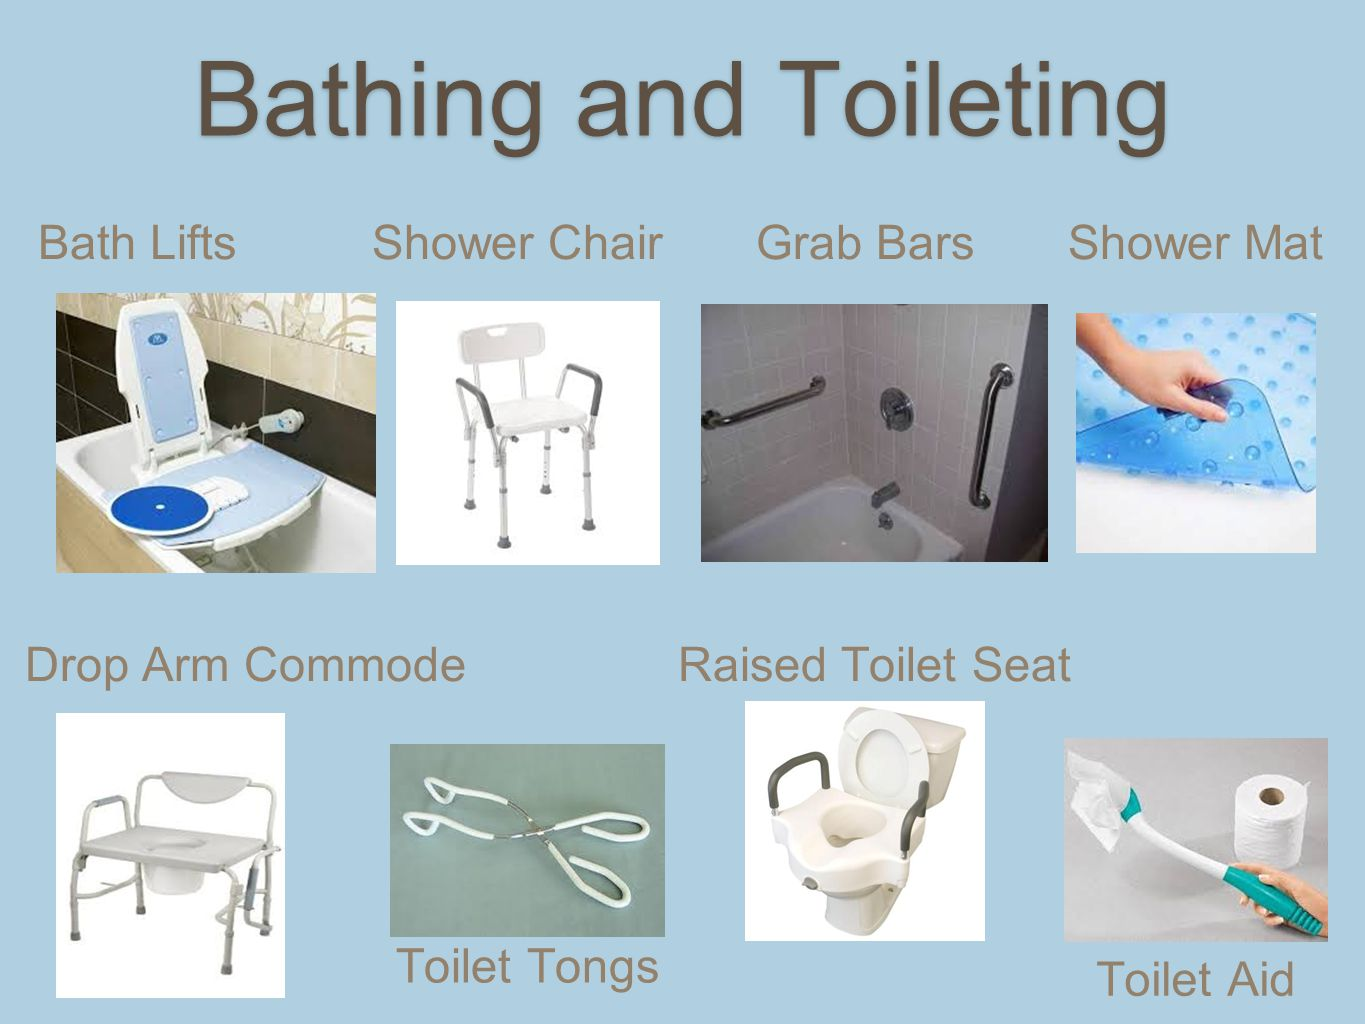 Bathing and Toileting Bath Lifts Shower Chair Grab Bars Shower Mat Drop Arm Commode Raised Toilet Seat Toilet Tongs Toilet Aid